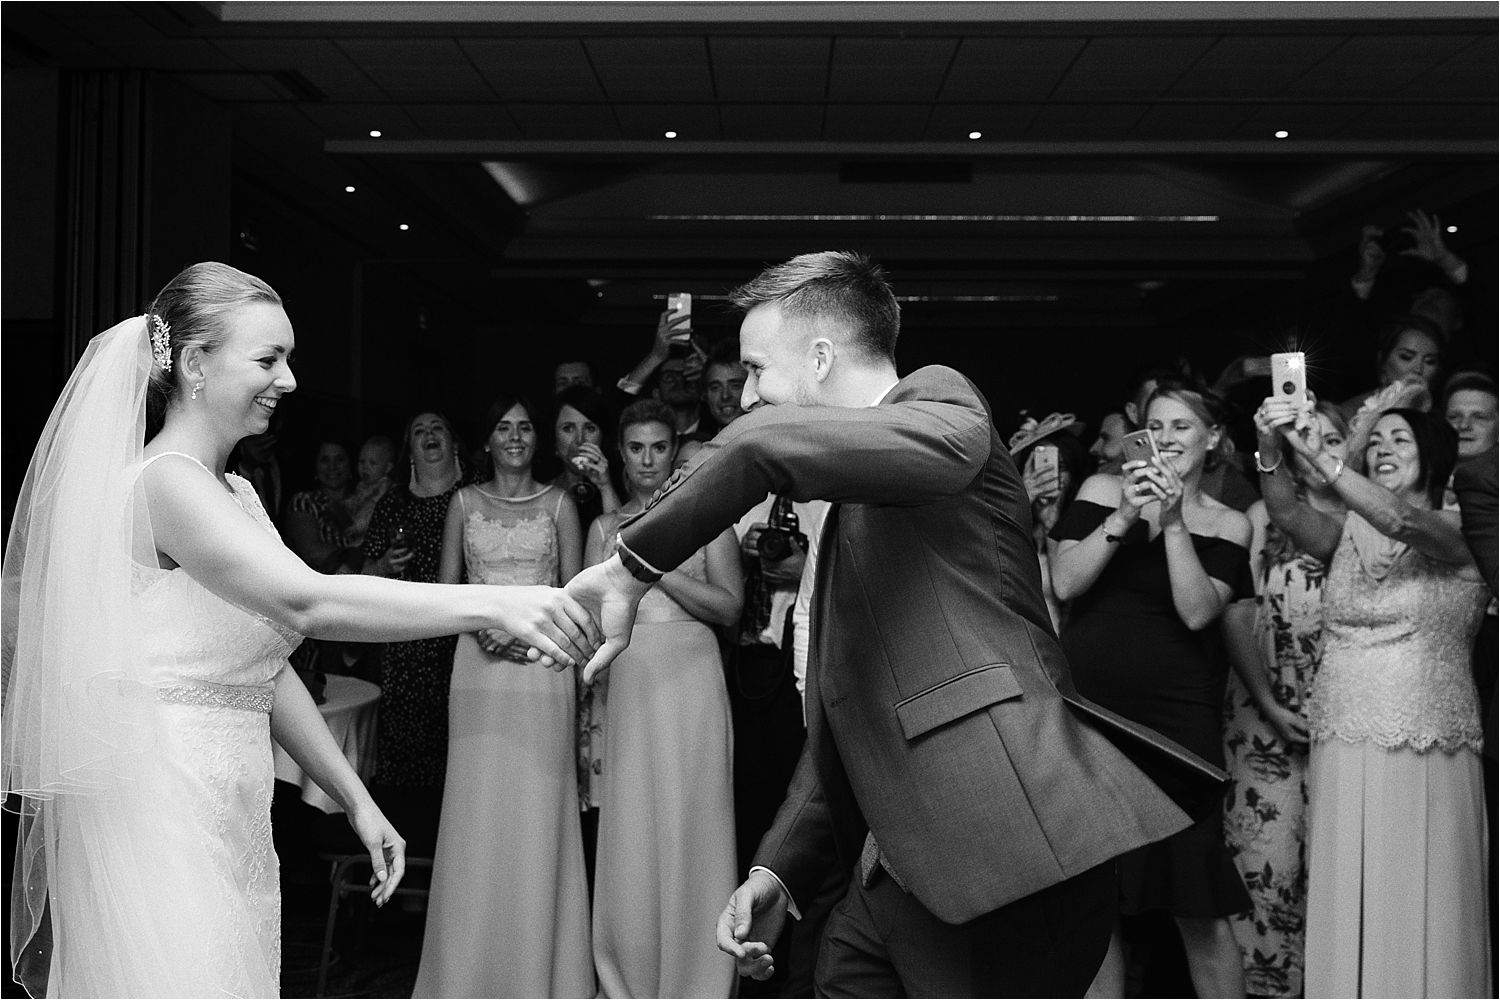 Bride and groom first dance at their eevening reception at Low Wood Bay in Windermere